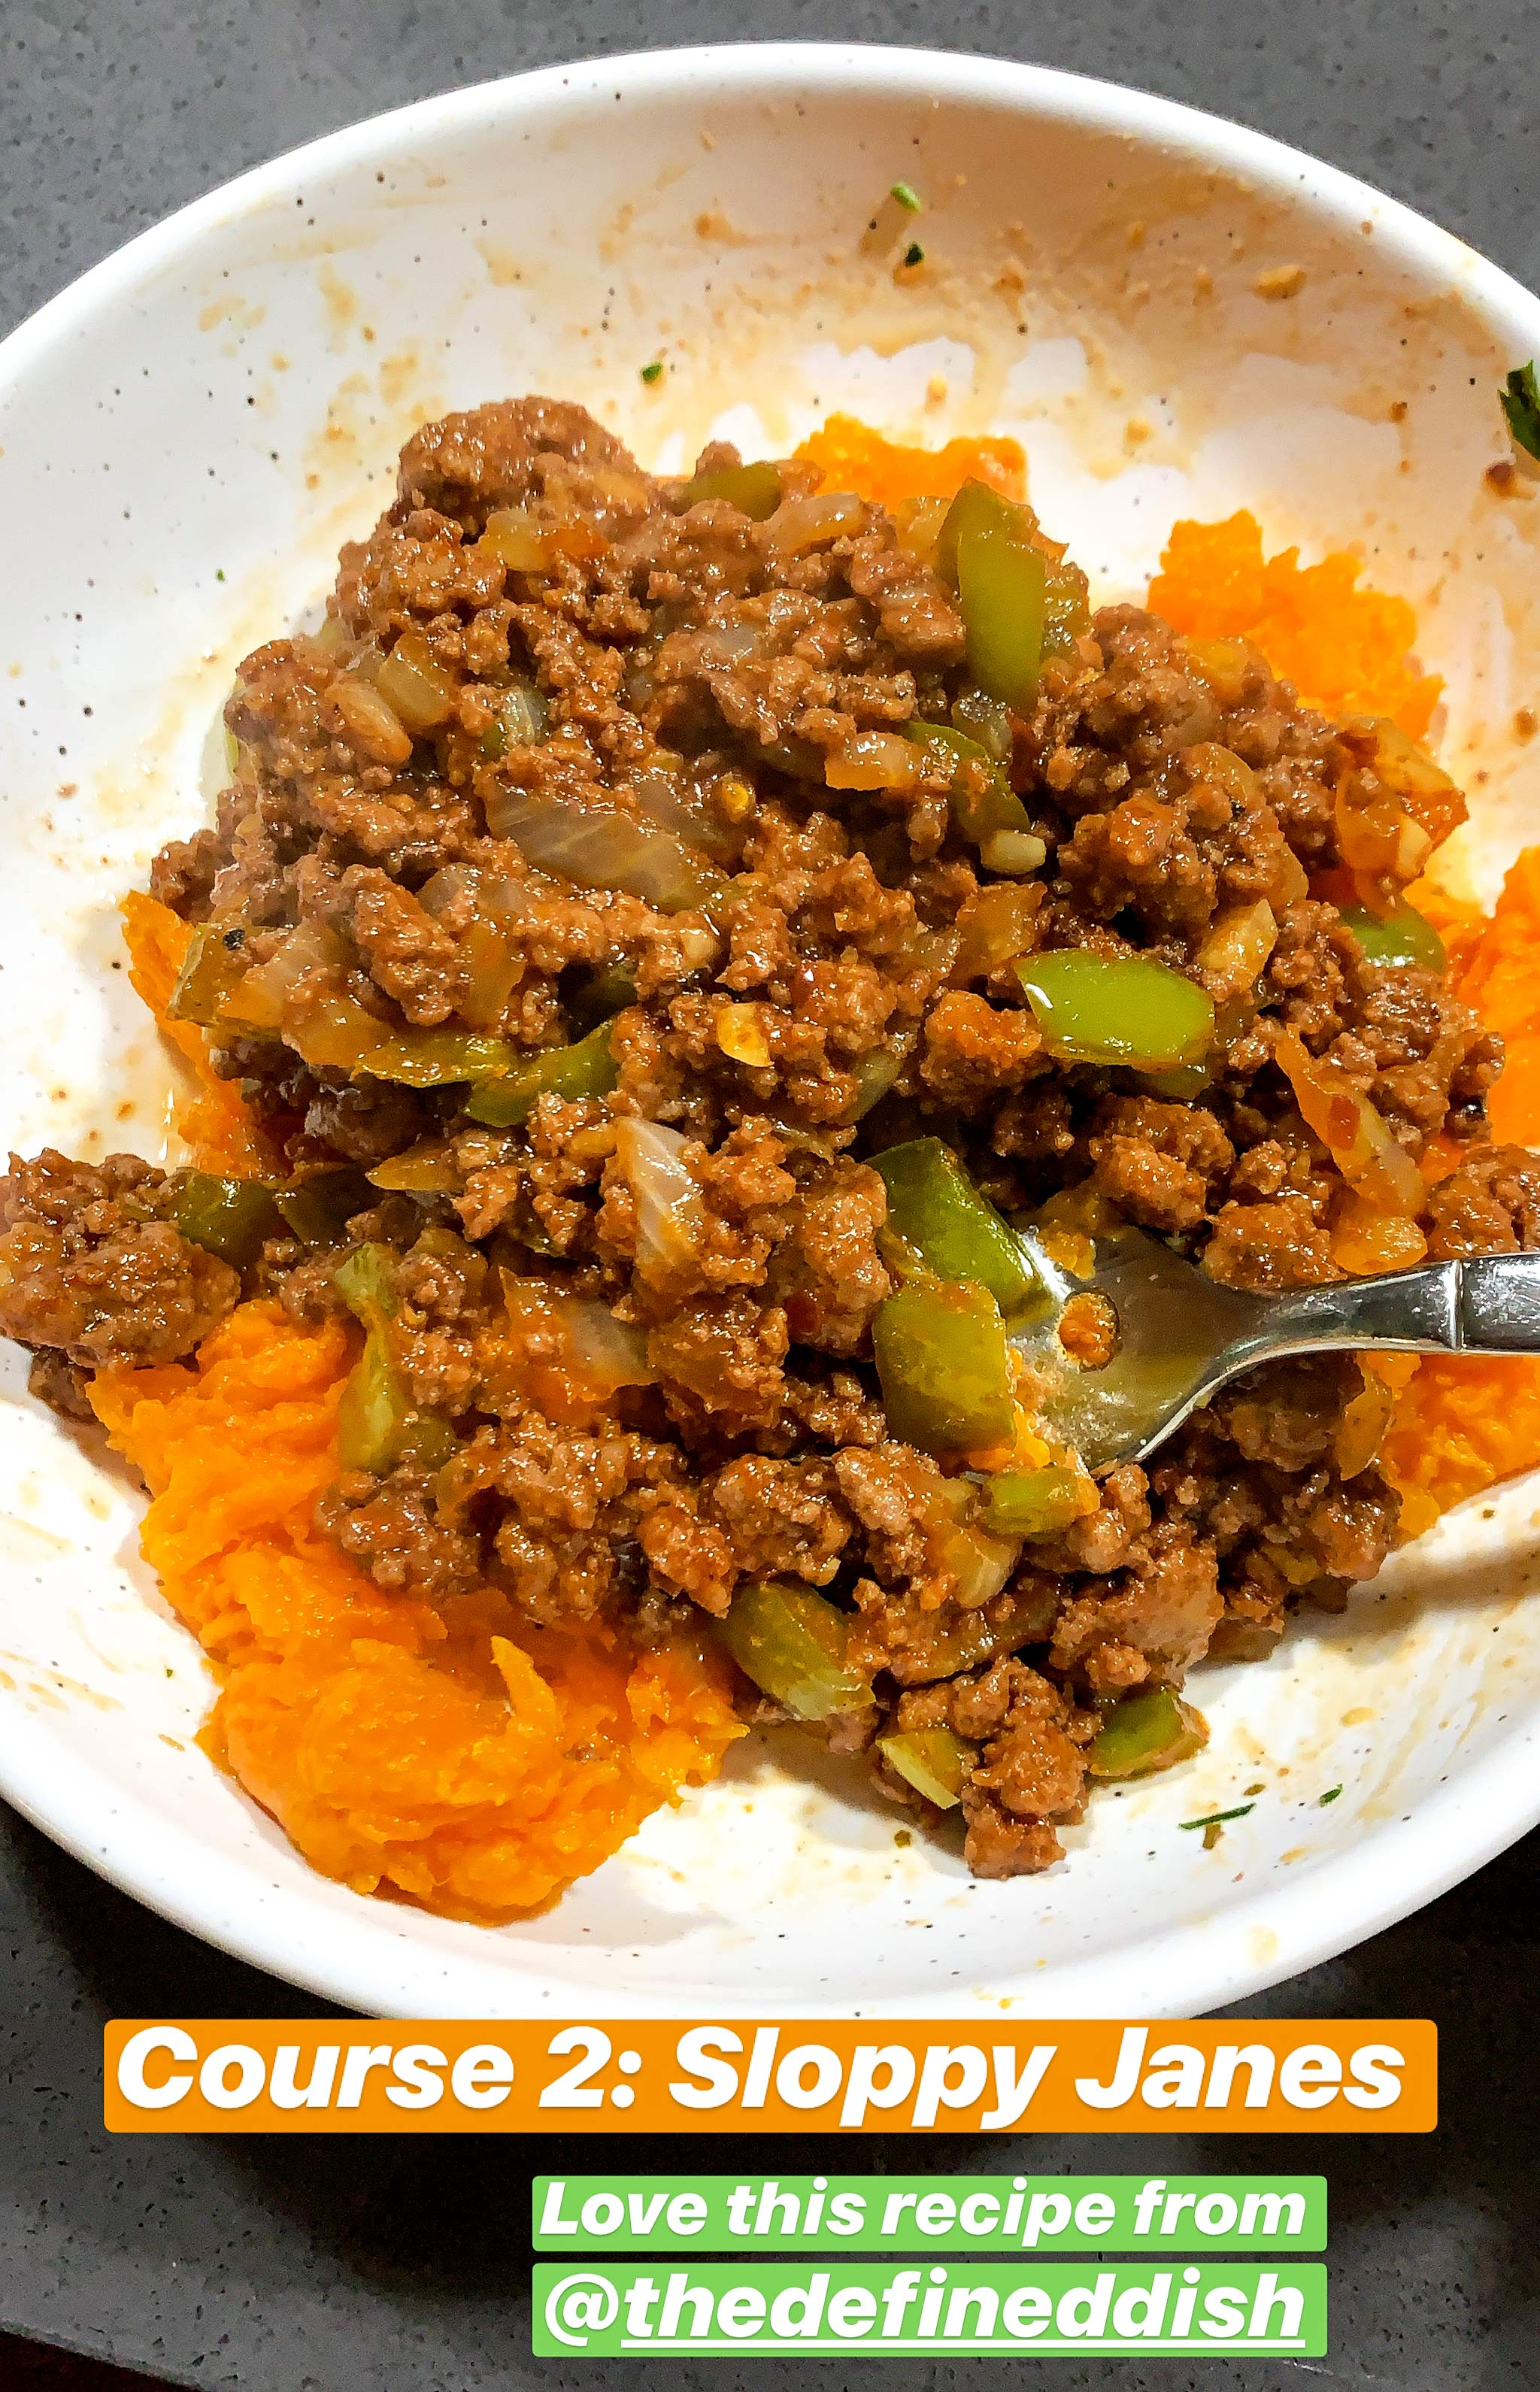 whole30 sloppy janes - one of our favorite whole30 dinner recipes